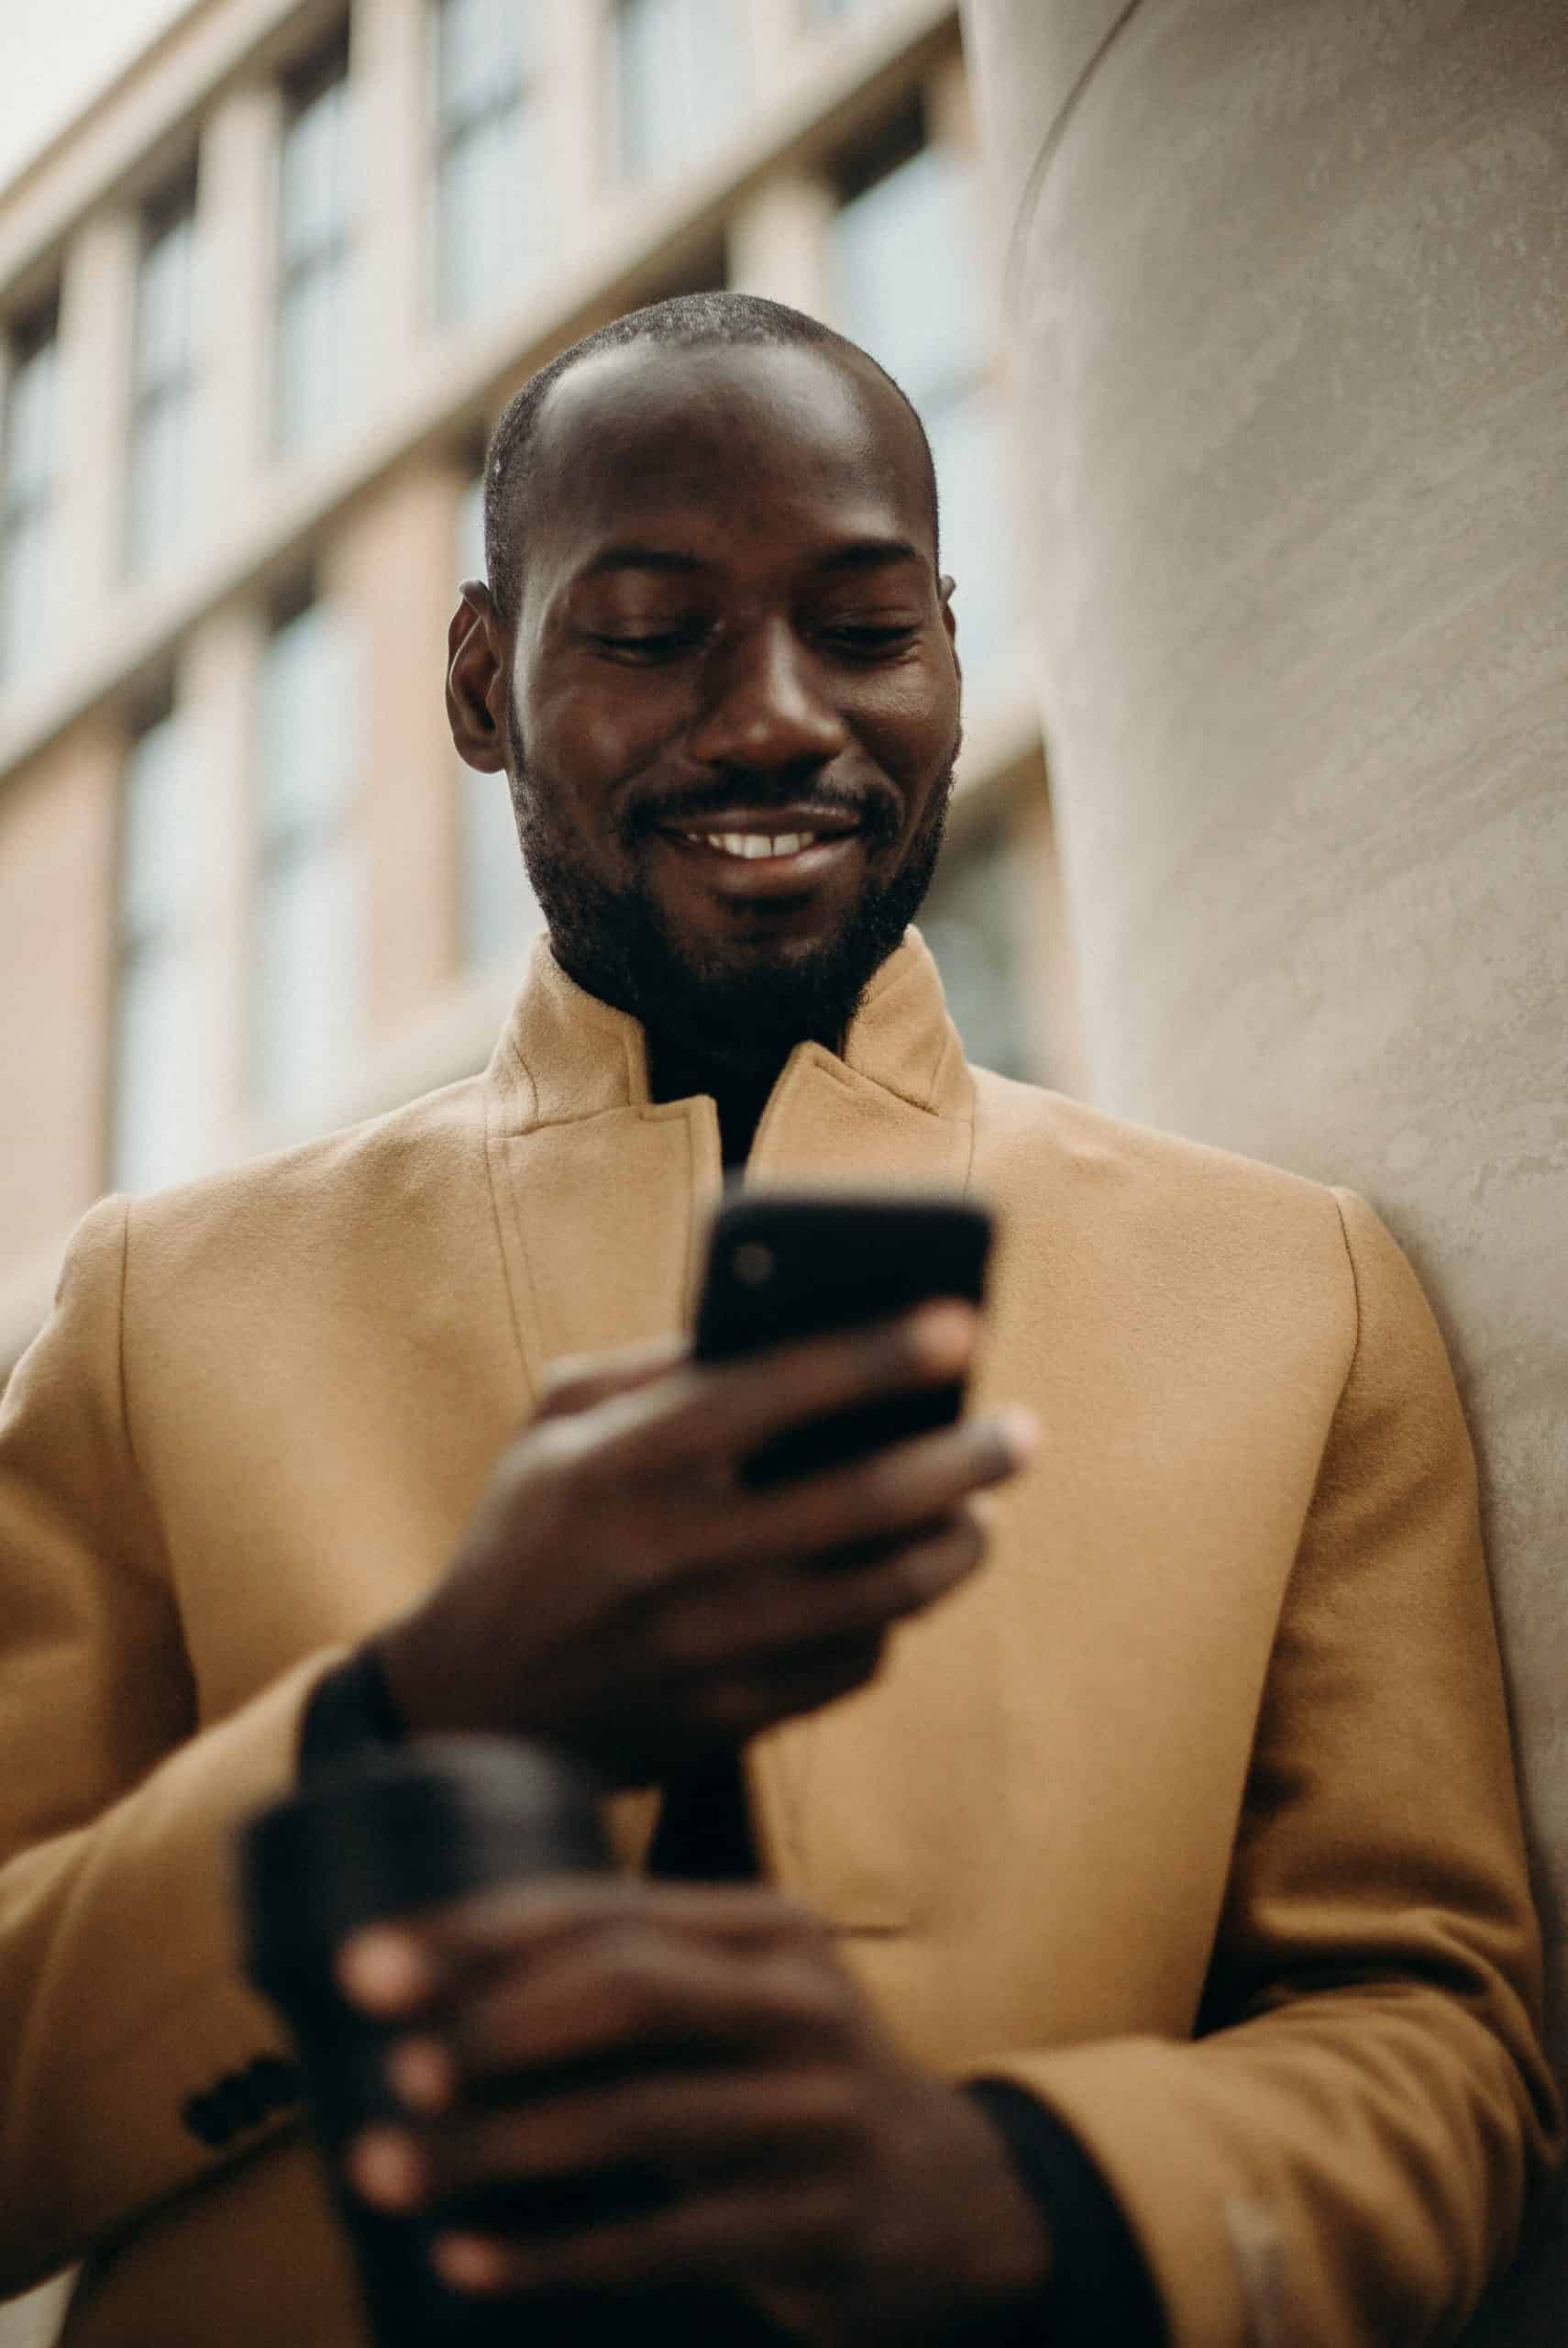 man looking at his phone smiling and reading a text message